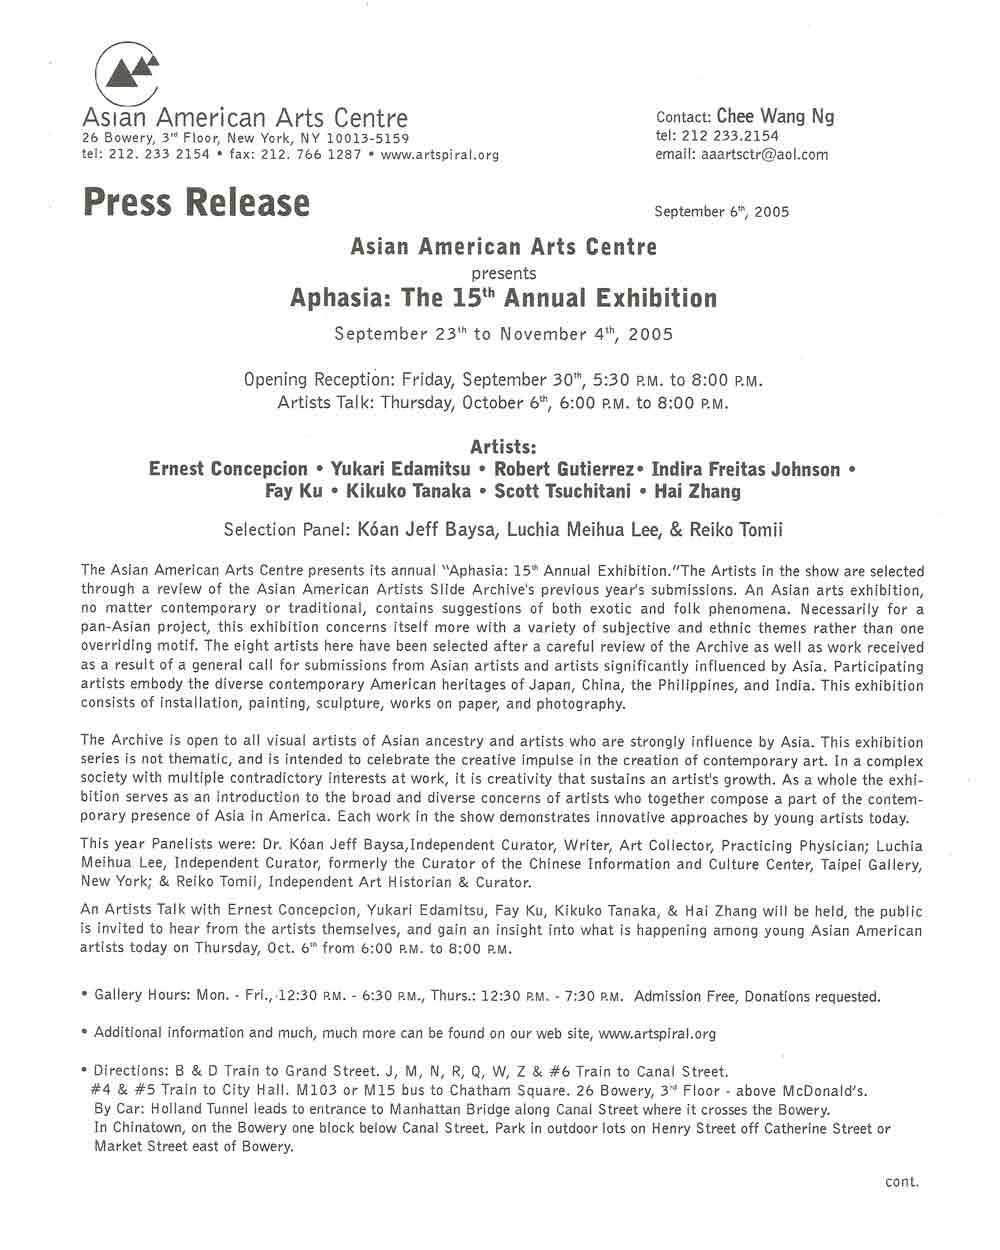 Aphasia press release, pg 1